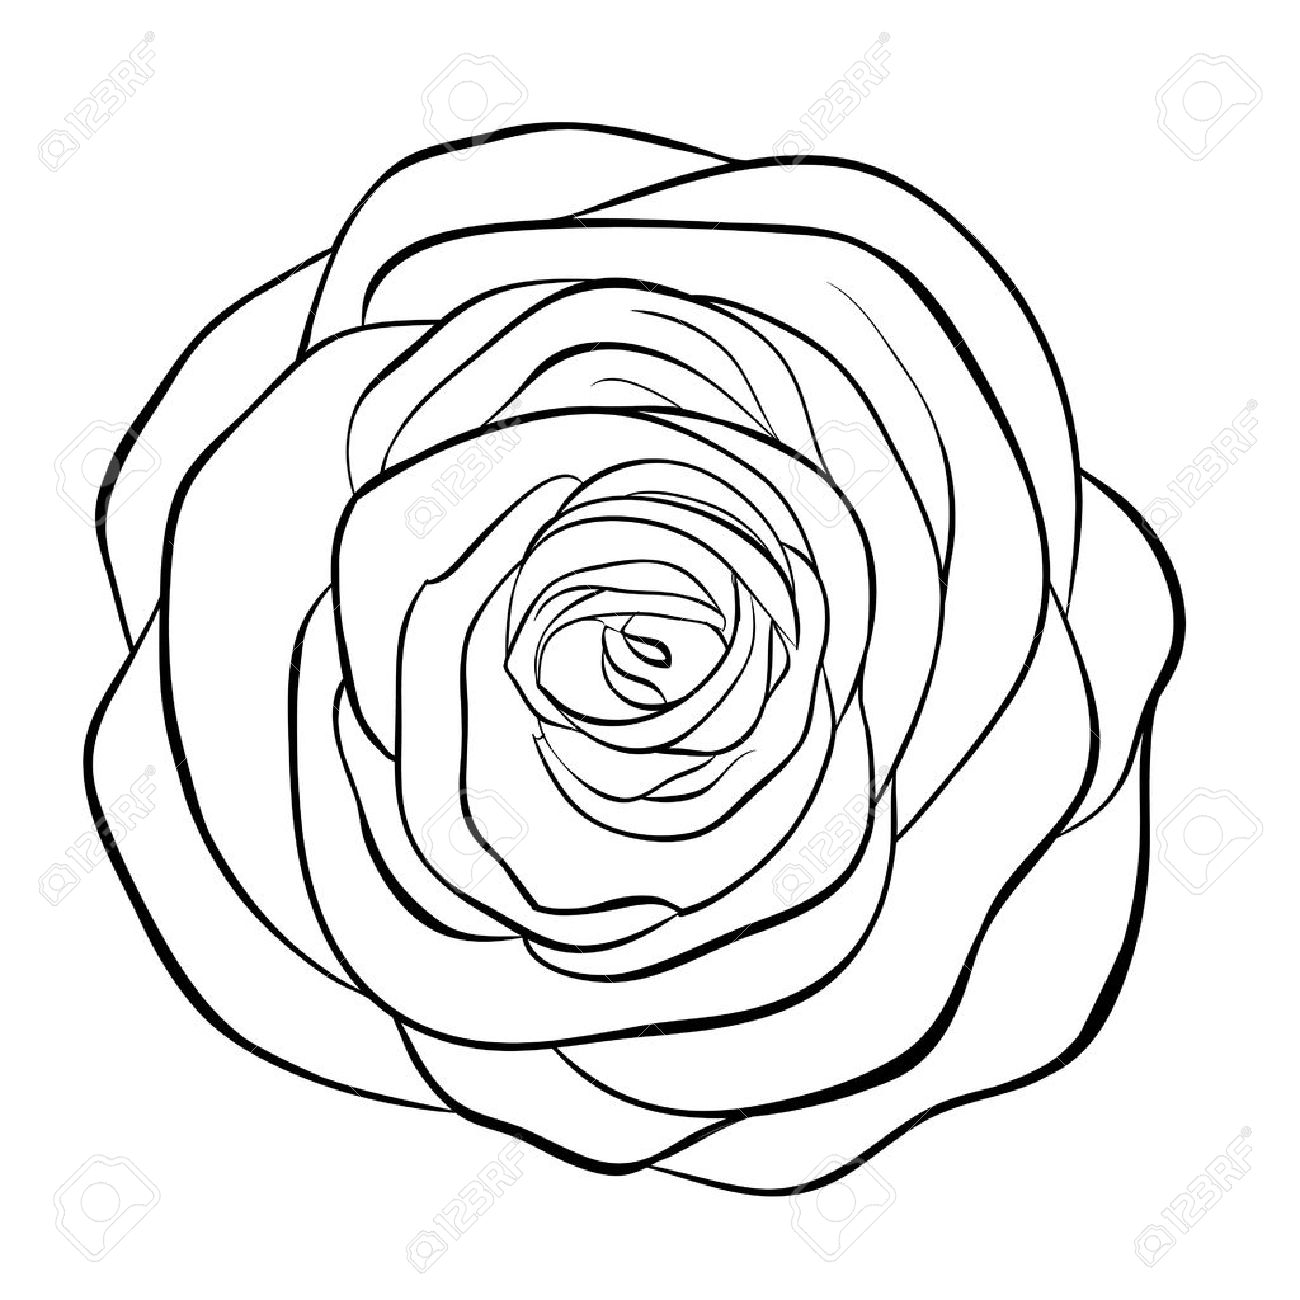 Beautiful Monochrome Black And White Rose Isolated On White ...